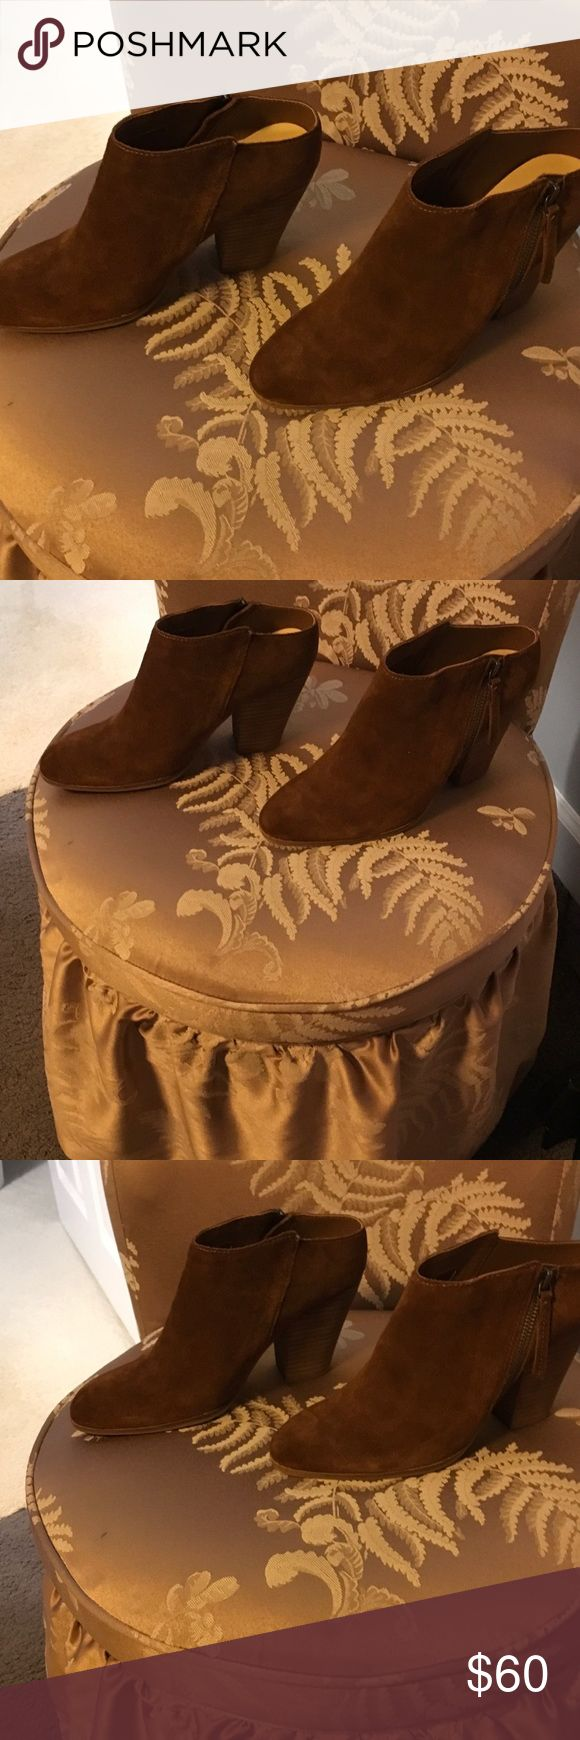 Shoes/Mules Brand New/Never Worn! Mules Dolce Vita Shoes Mules & Clogs